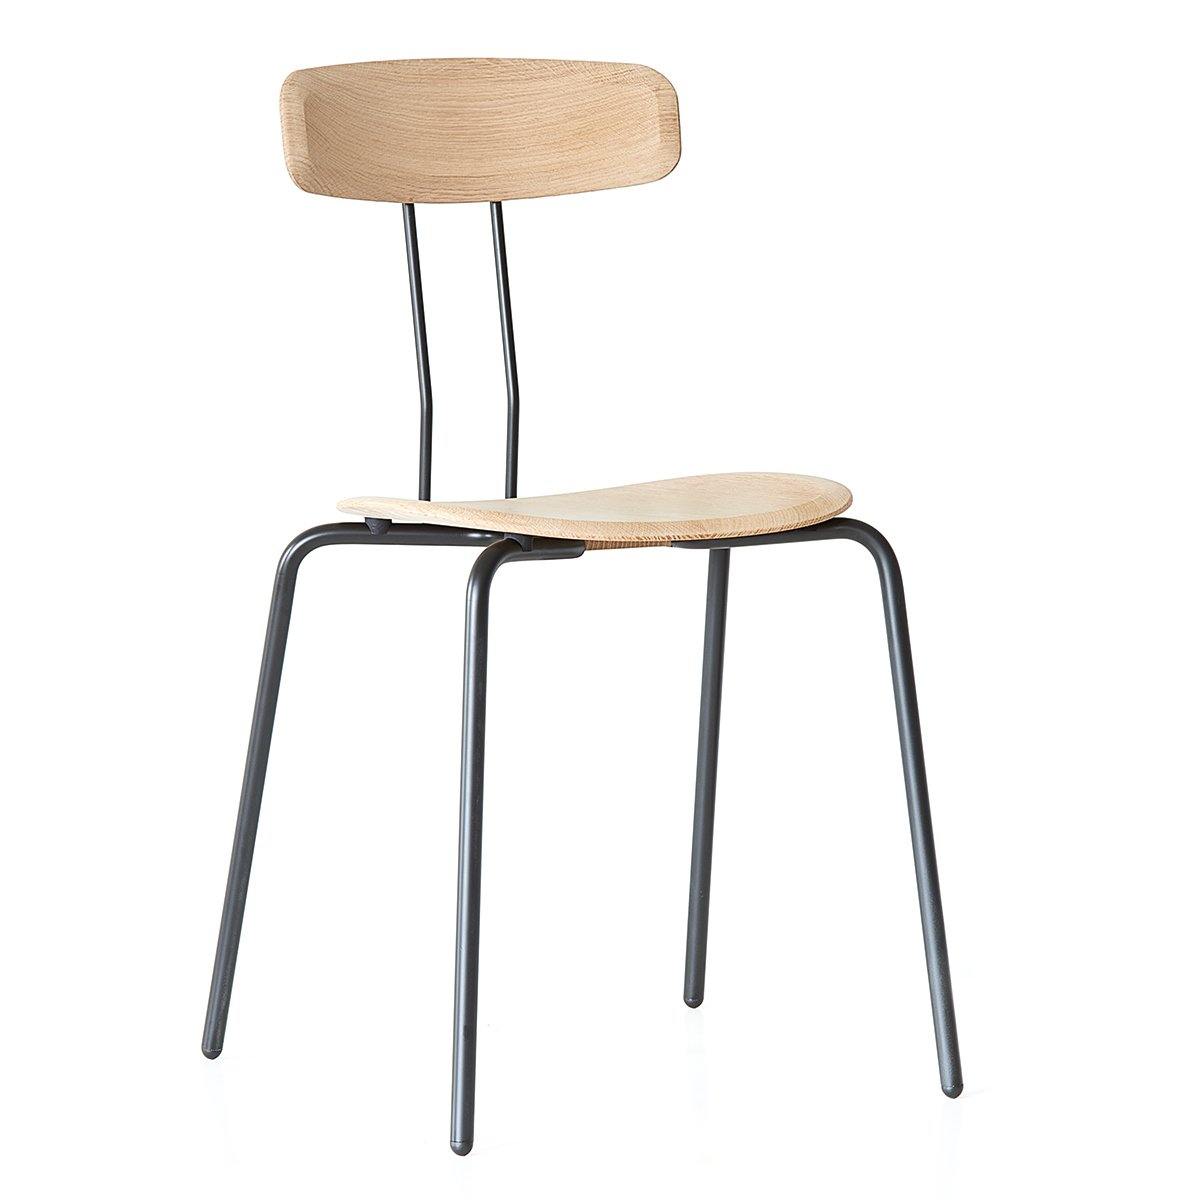 Okito Chair by Zeitraum | Do Shop